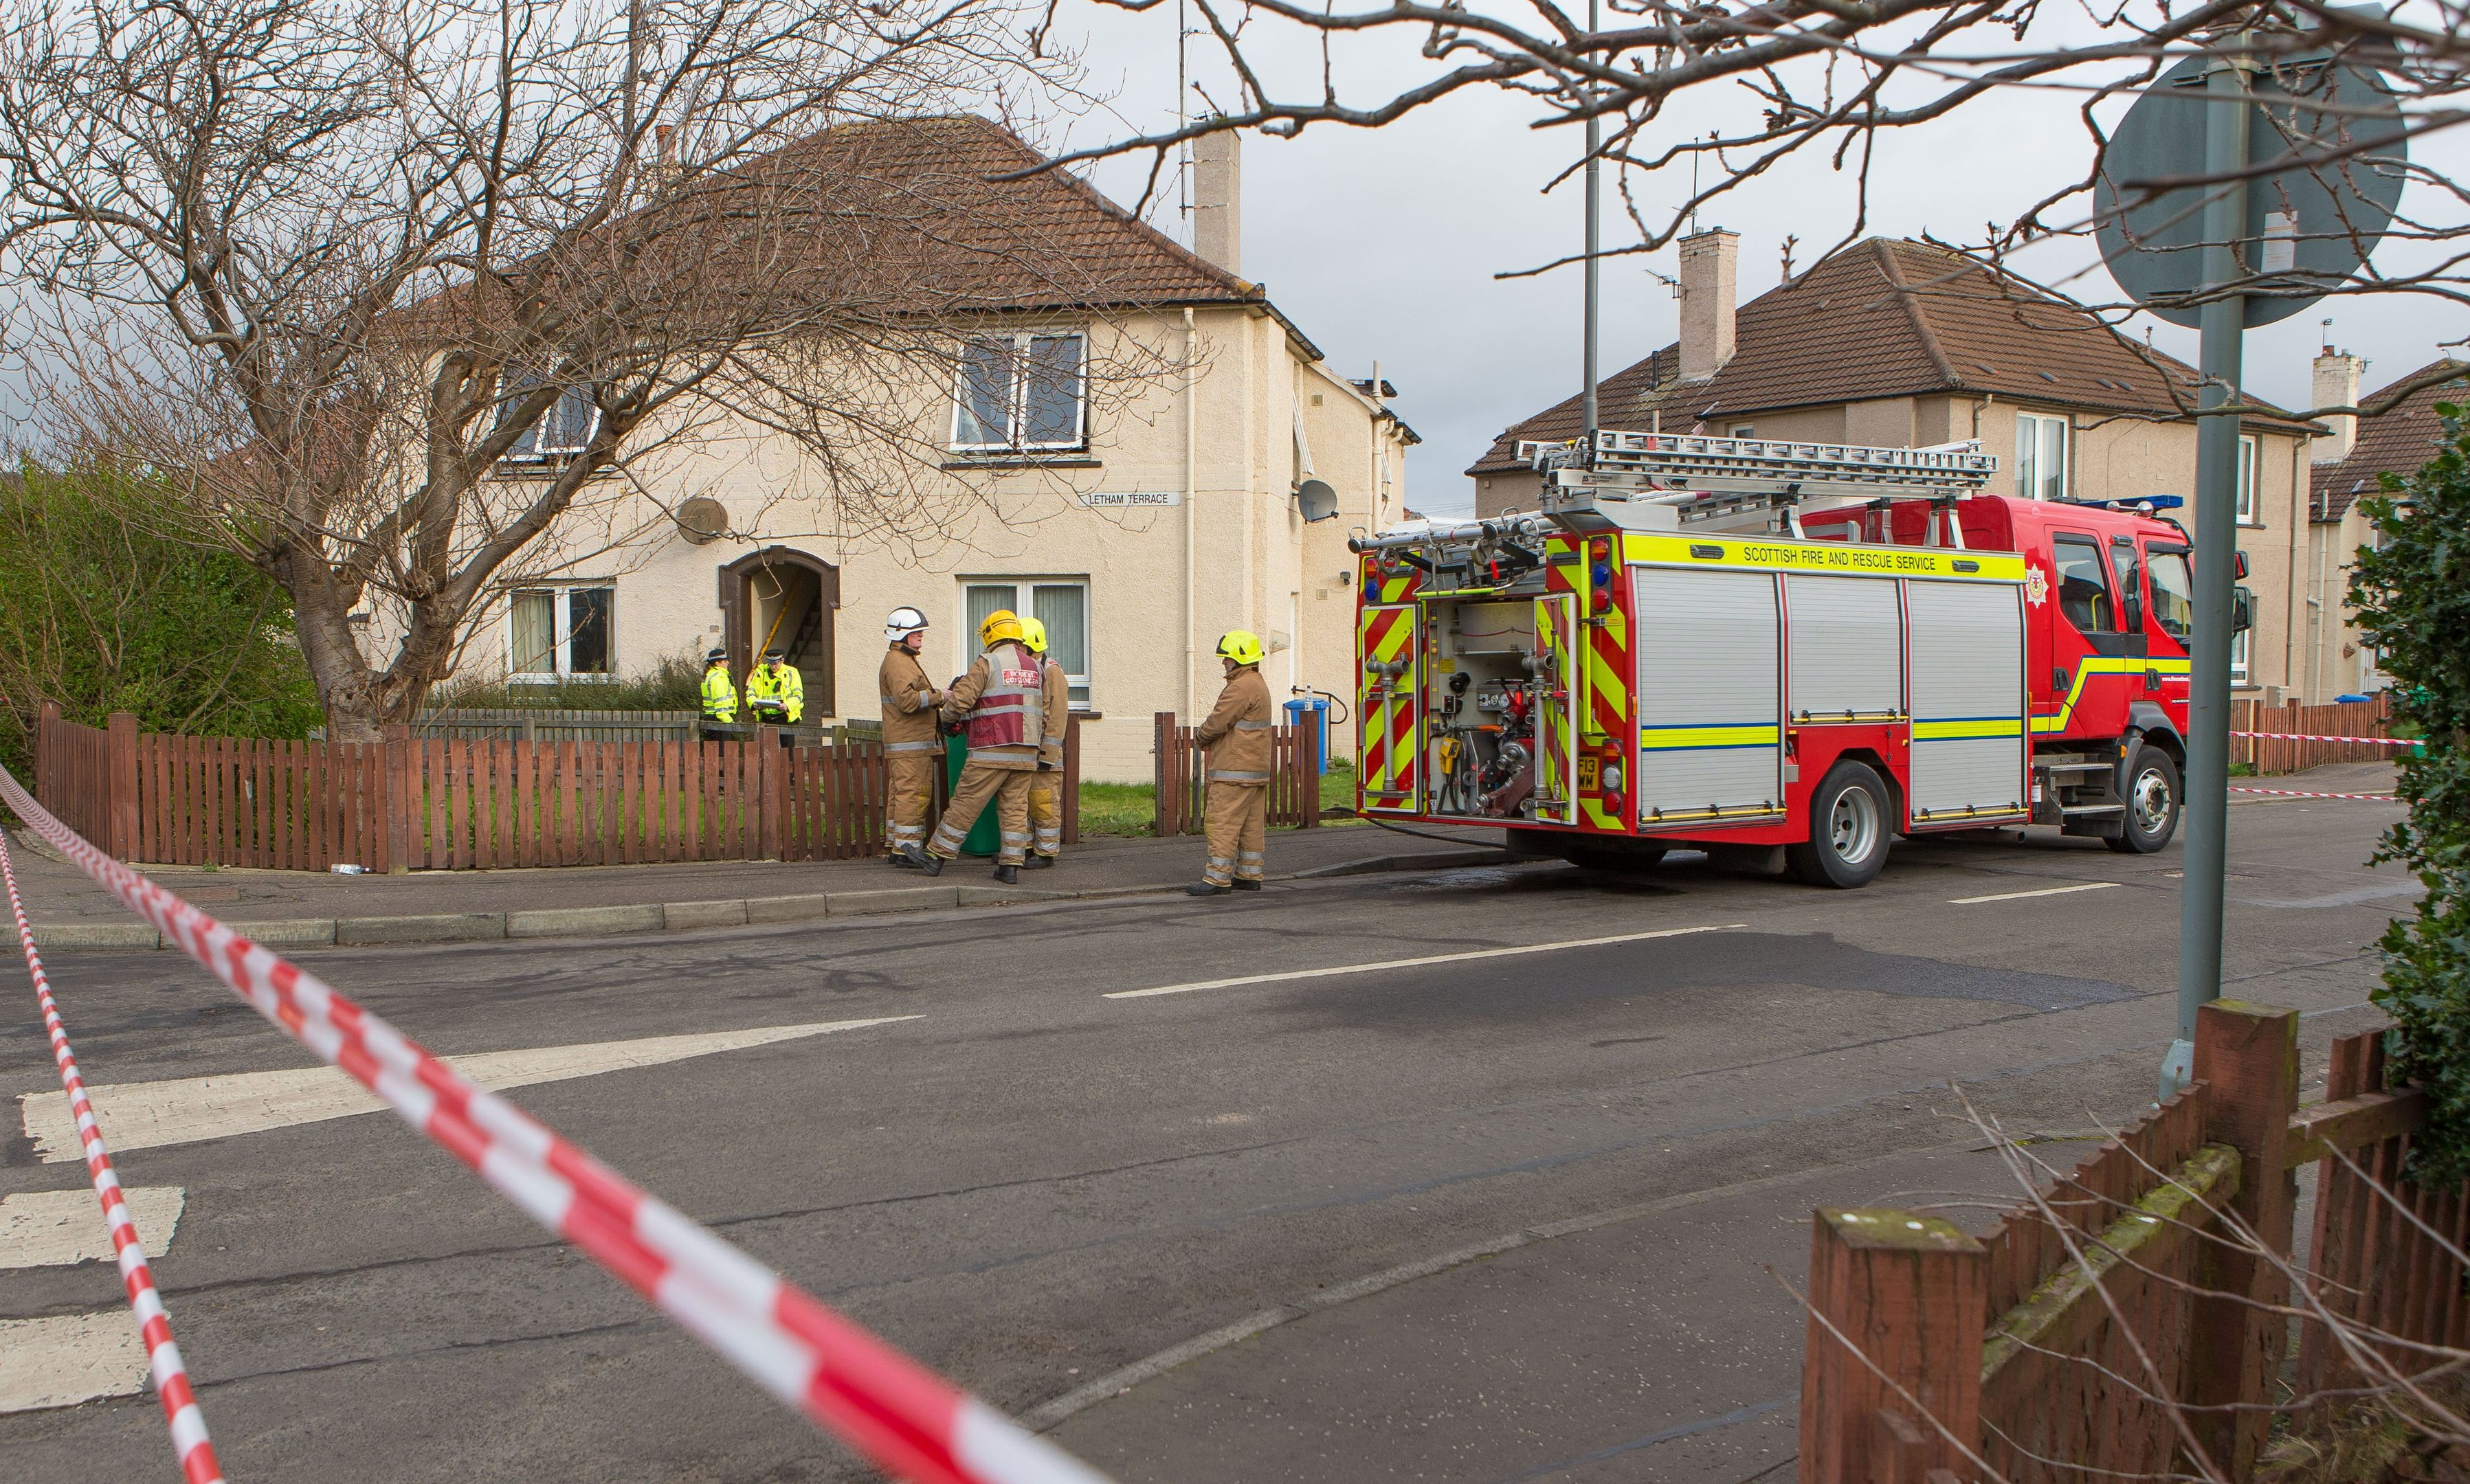 Fire crews and police in attendance at Waggon Road on February 21.